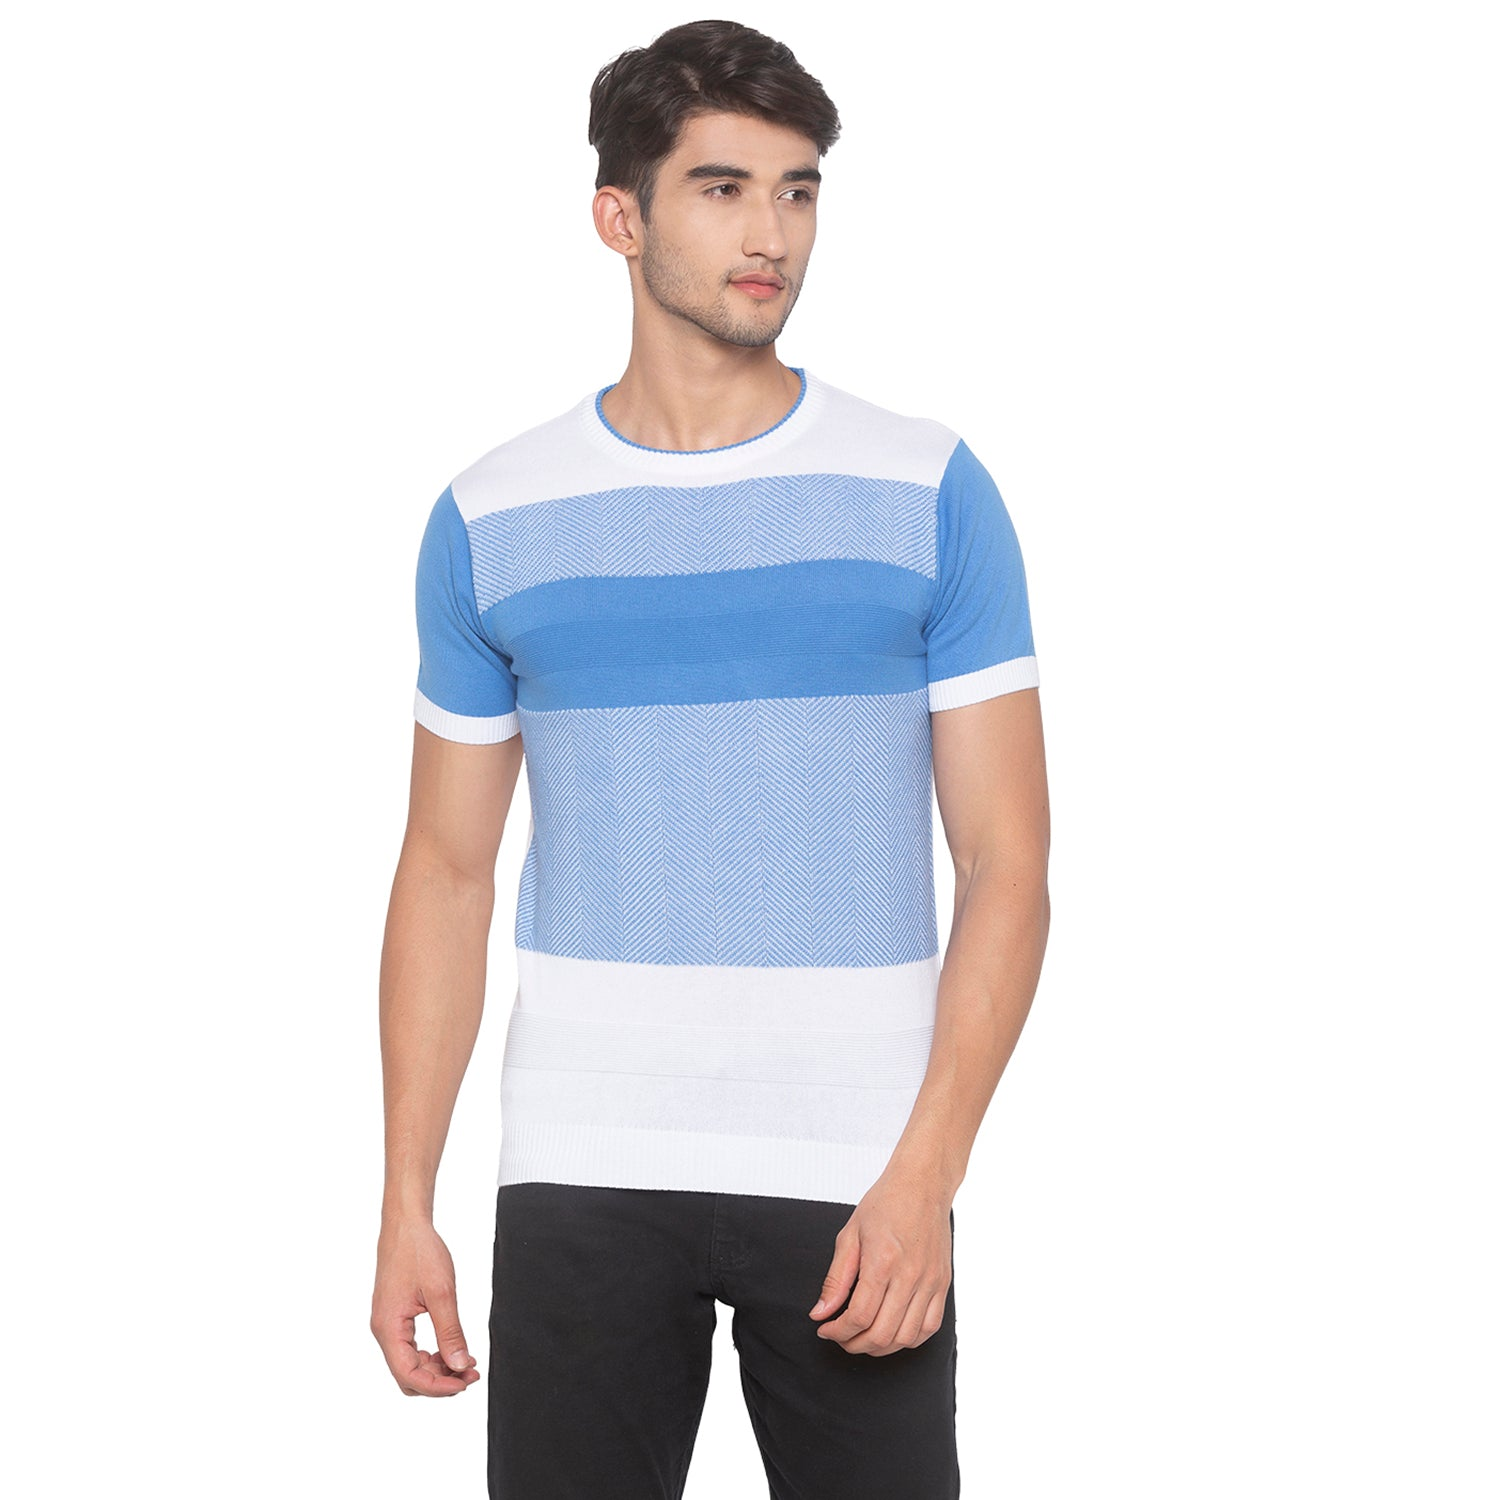 Powder Blue Solid T-Shirt-1